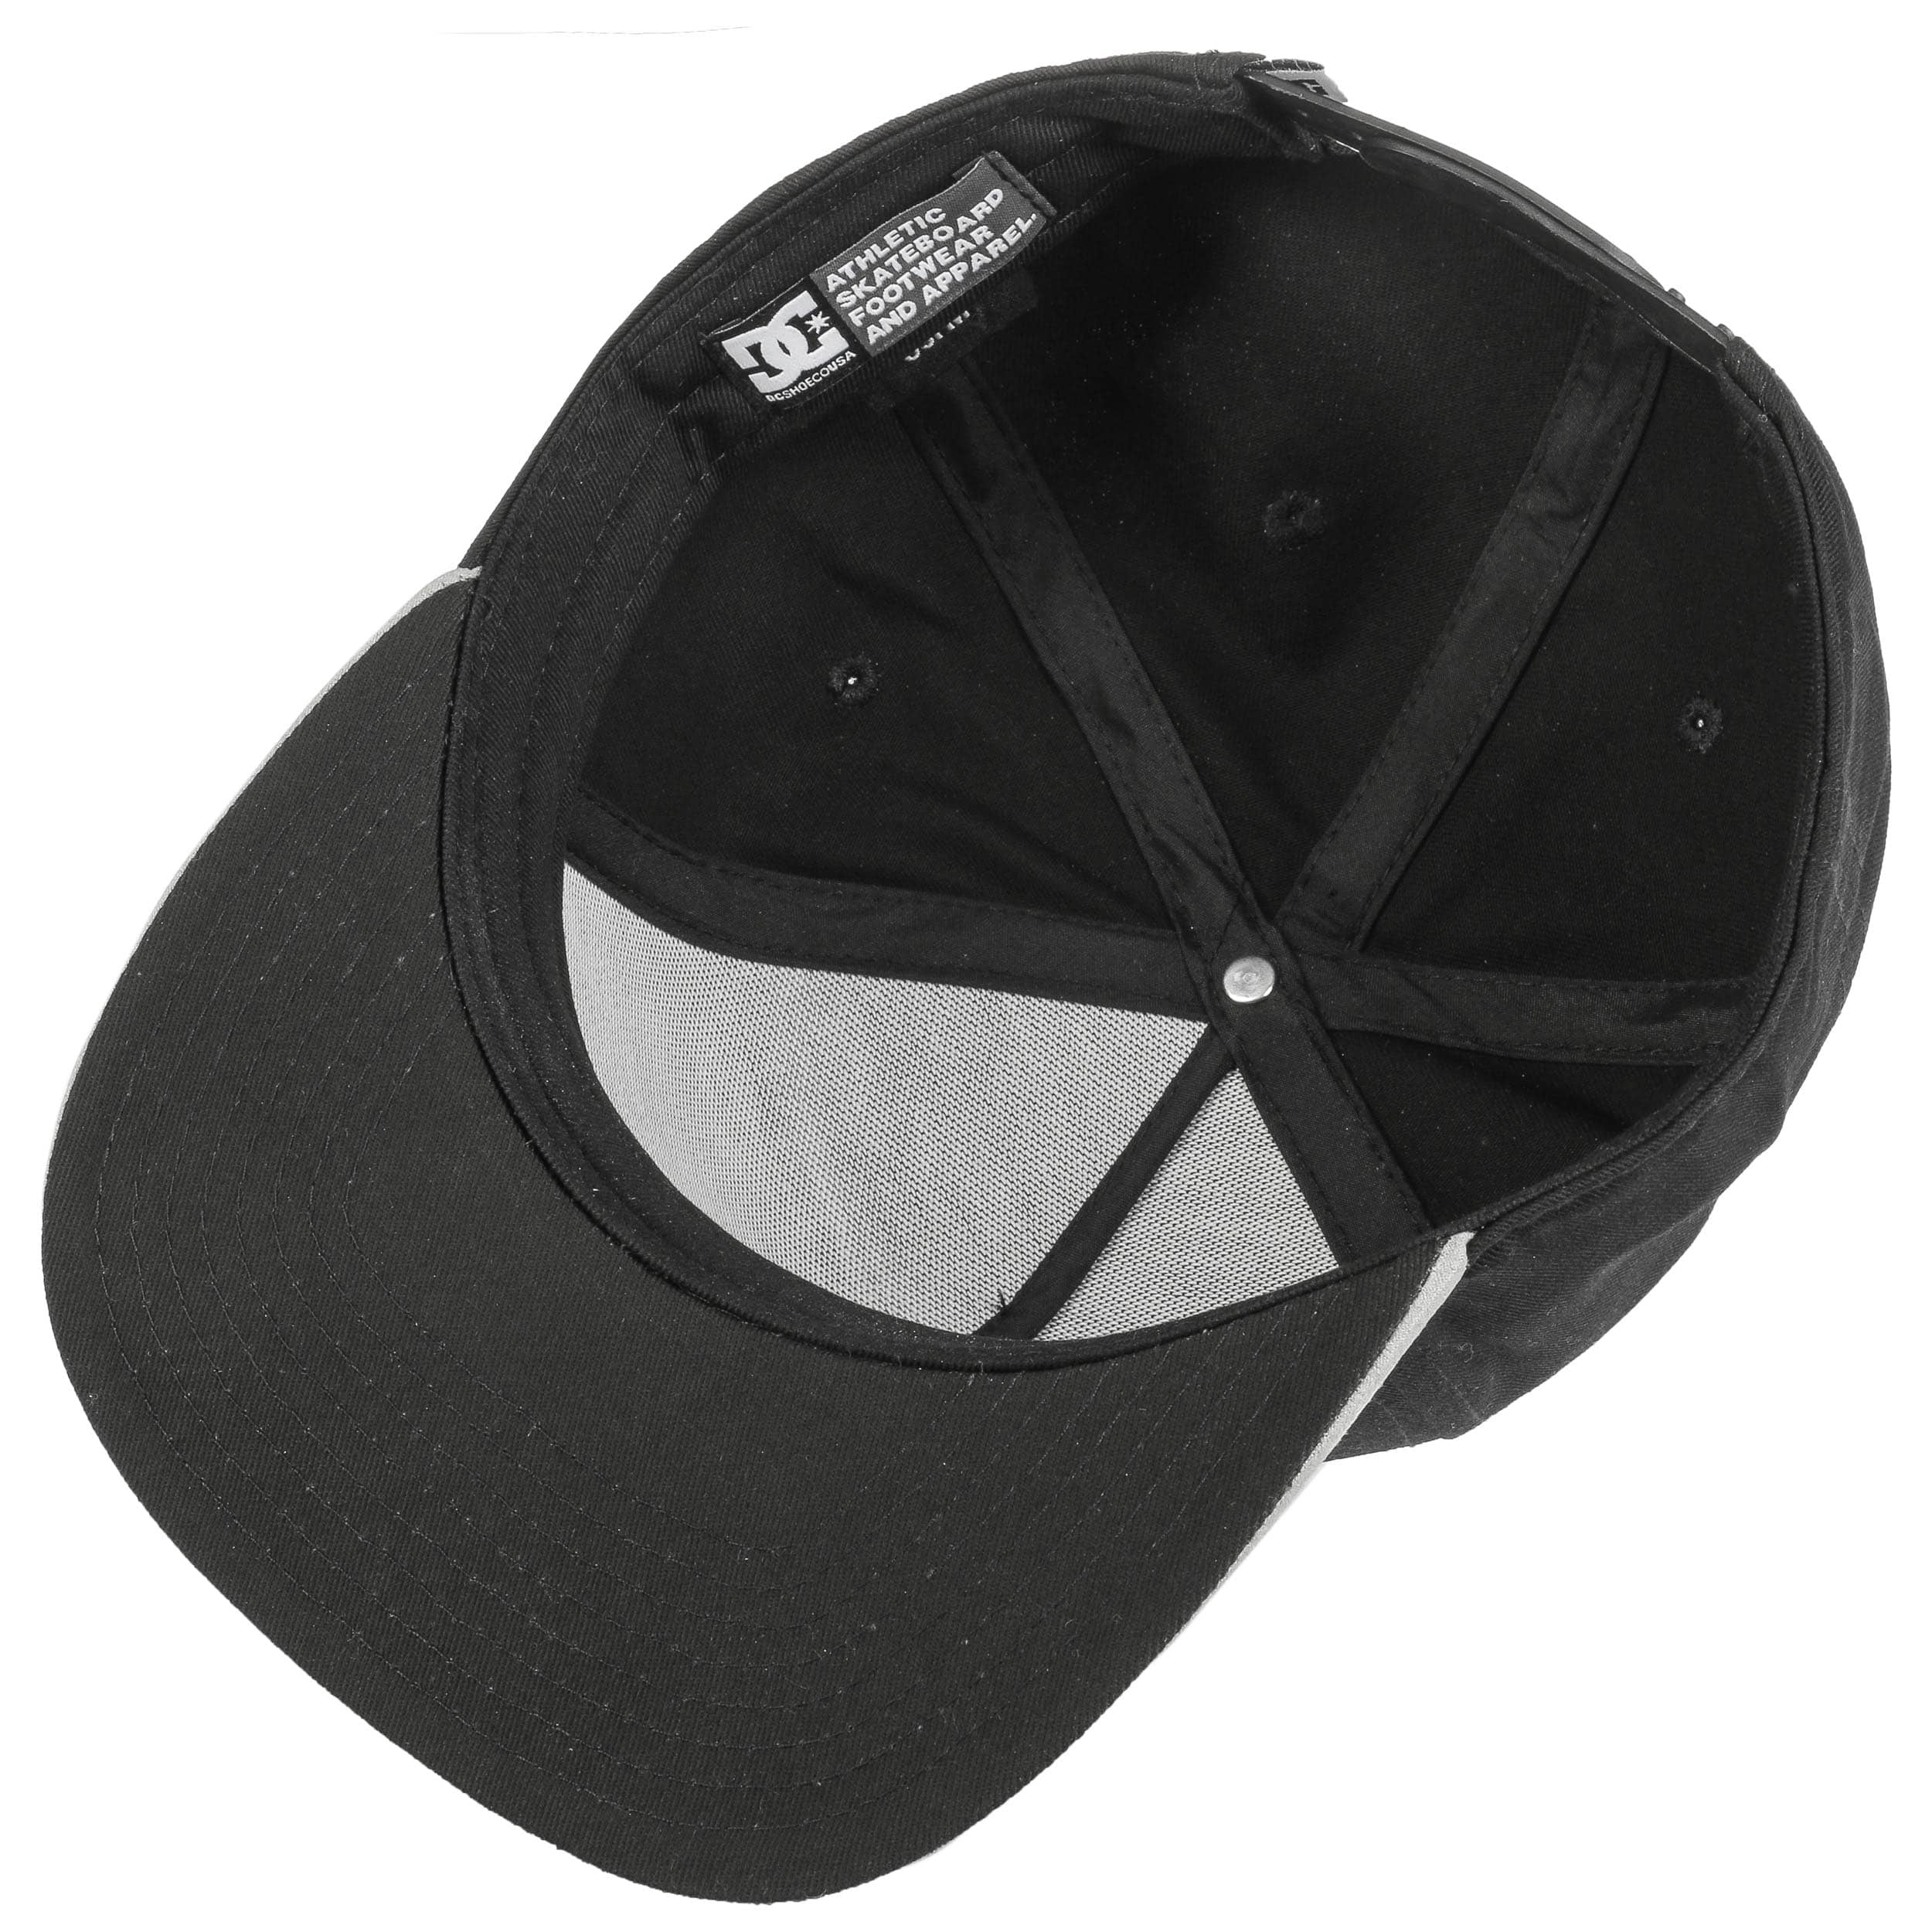 Gorra Snapback Dacks by DC Shoes Co - Gorras - sombreroshop.es 3a571cb9808